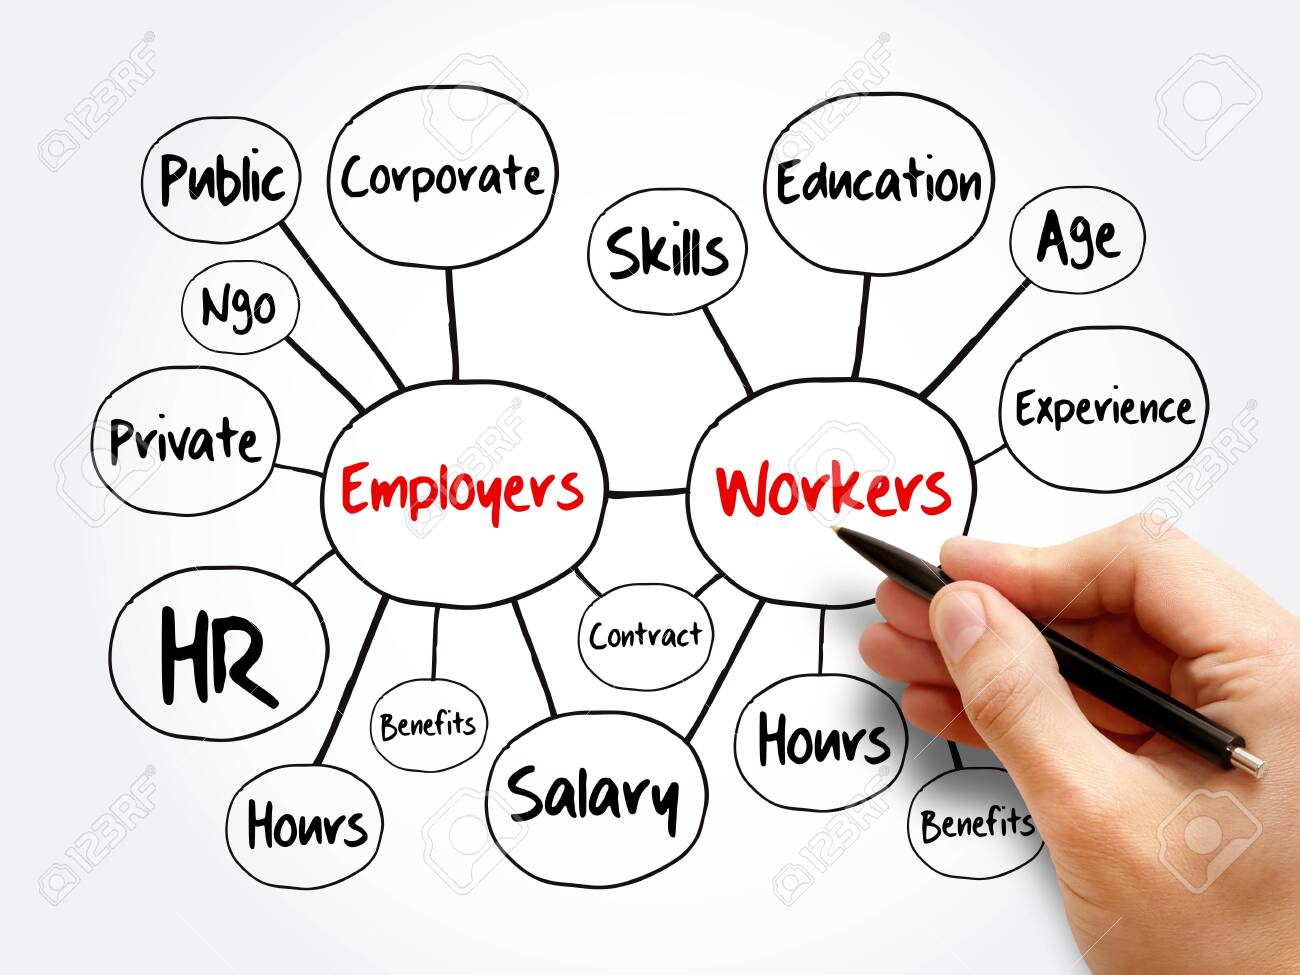 Employers and workers mind map flowchart, business concept for presentations and reports - 147881315